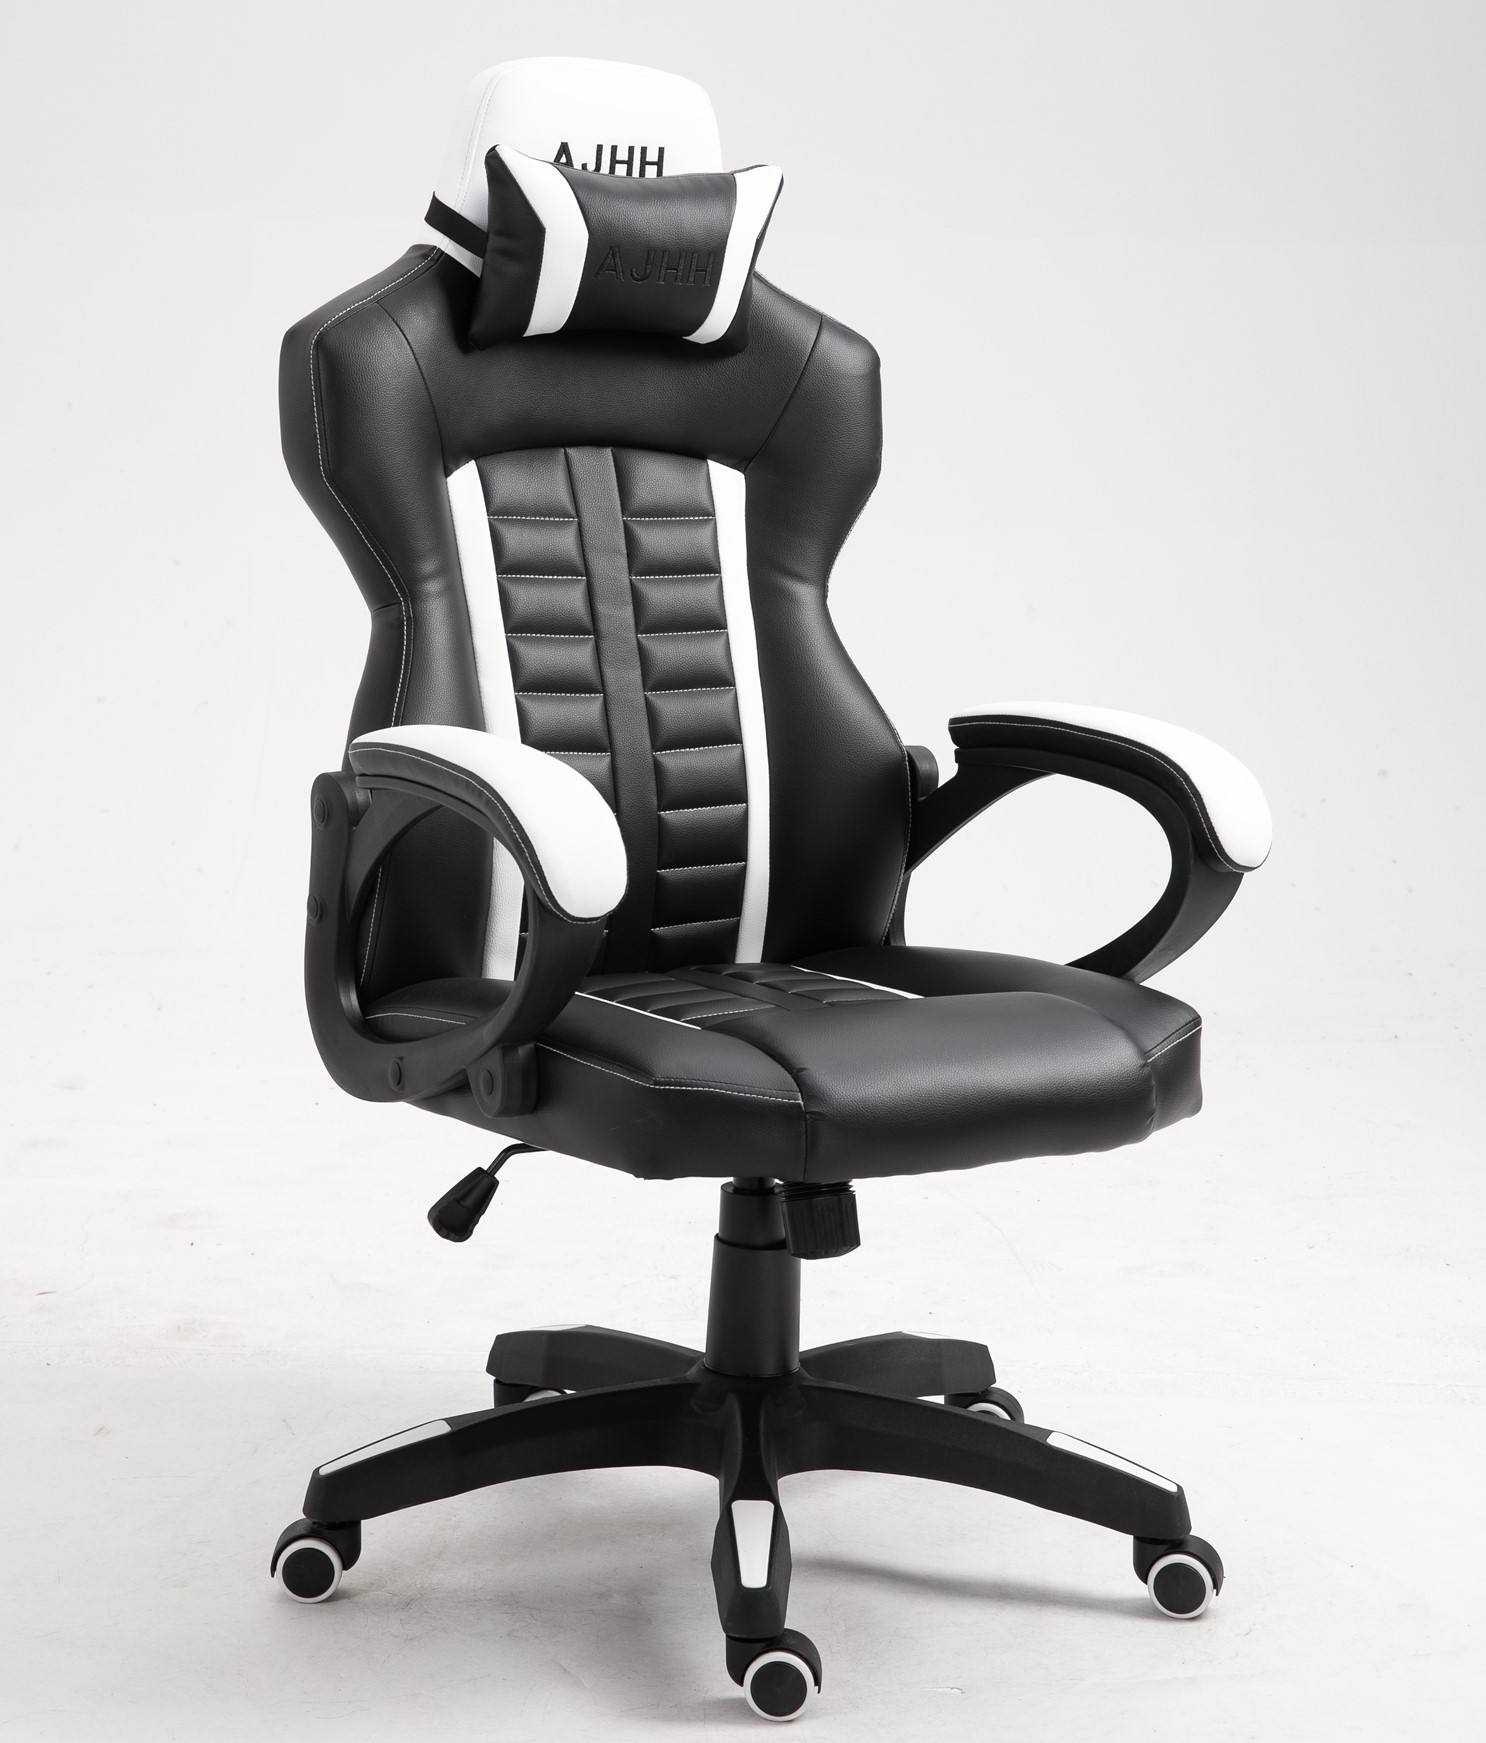 Factories Nice Price Super Soft PVC Office Computer Chairs Gamer Gaming Chair Revolving Mute Casters